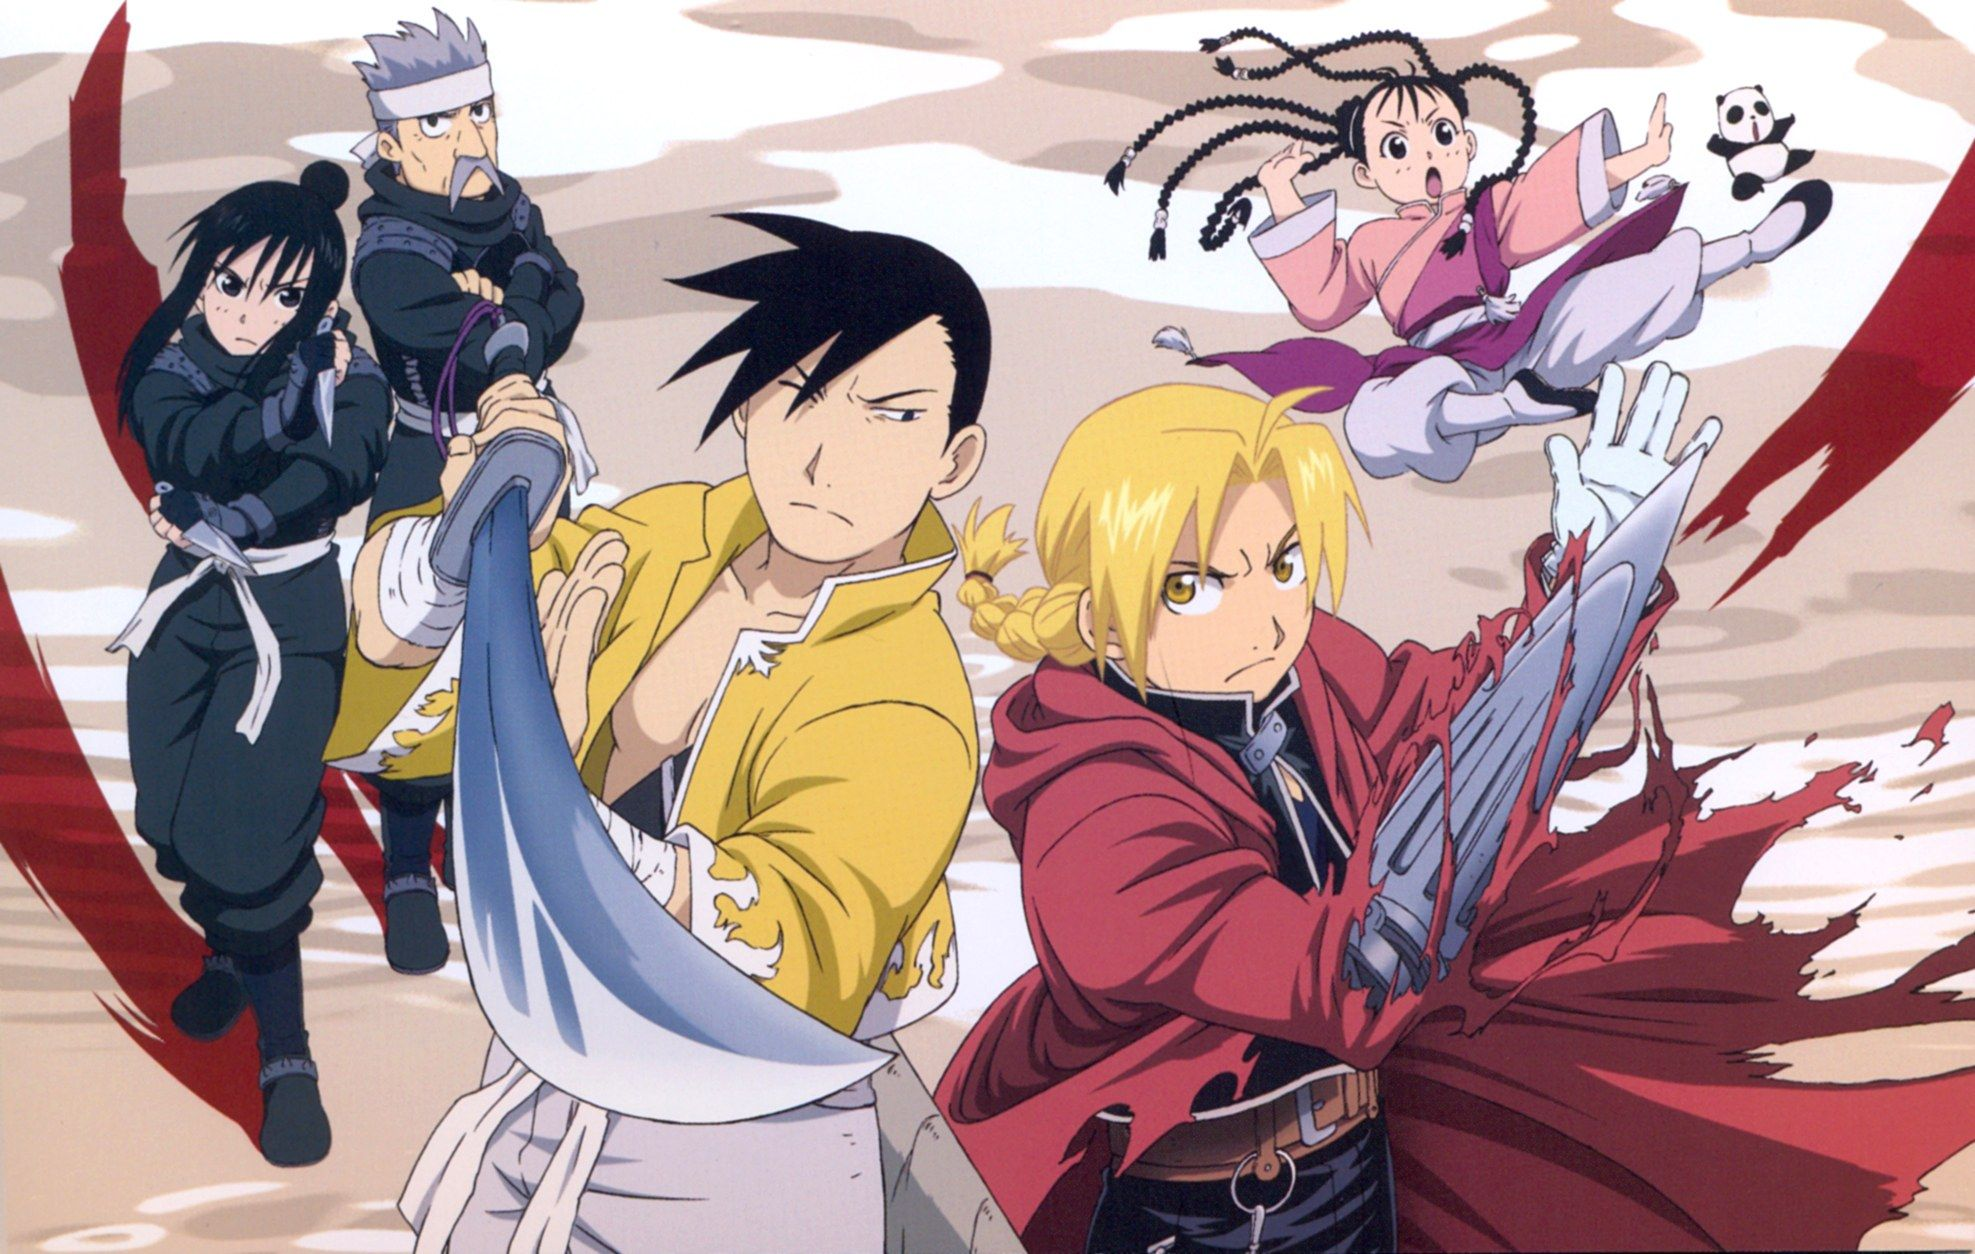 Director reveals more details on the live-action Full Metal Alchemist film